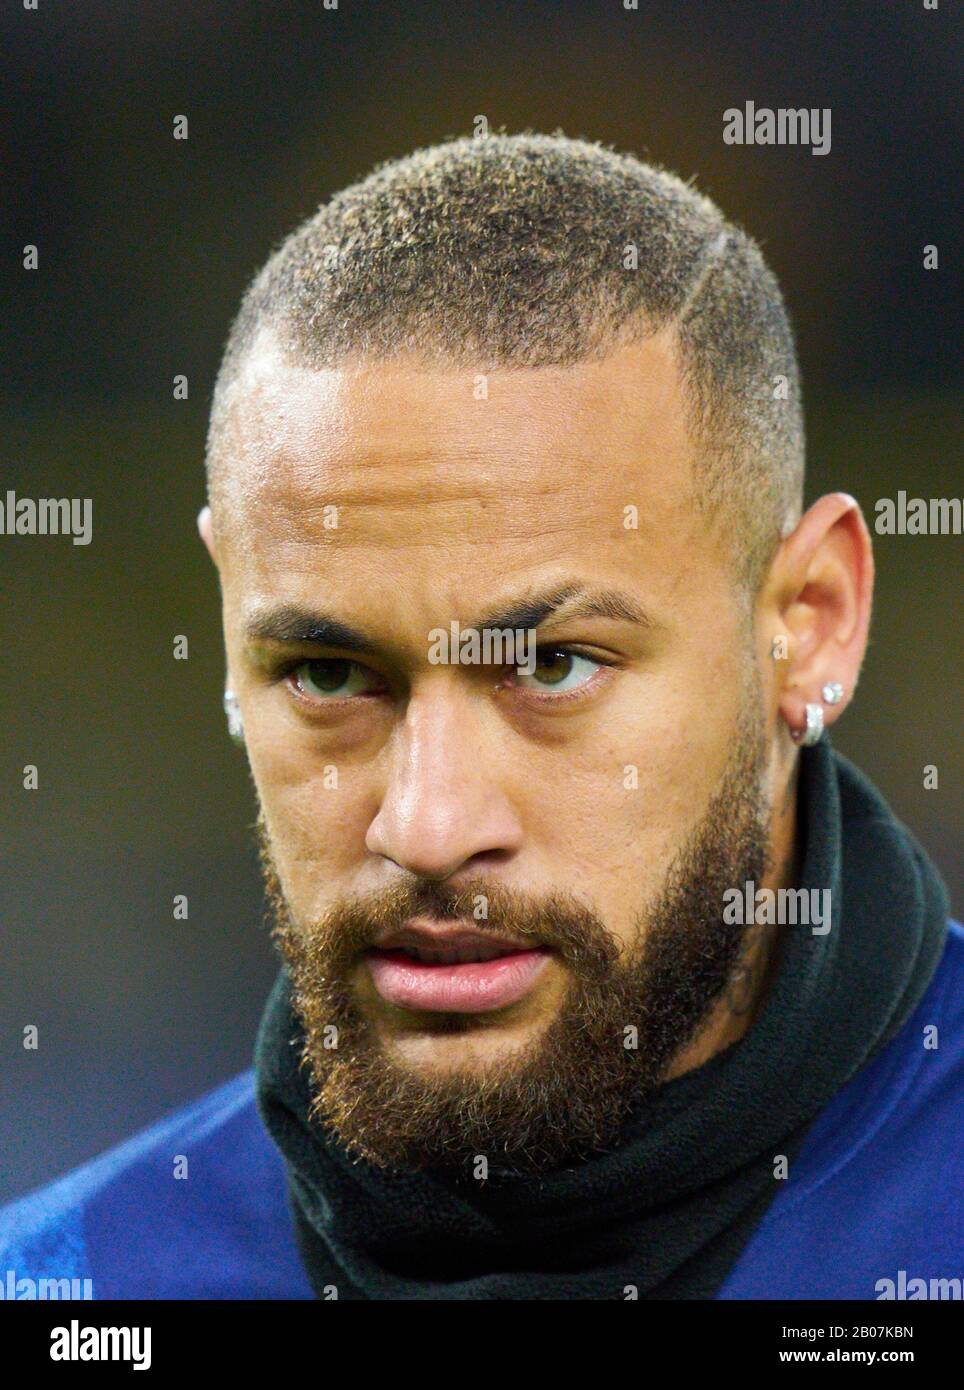 Neymar Hairstyle 2020 : neymar, hairstyle, Neymar, Portrait, Resolution, Stock, Photography, Images, Alamy